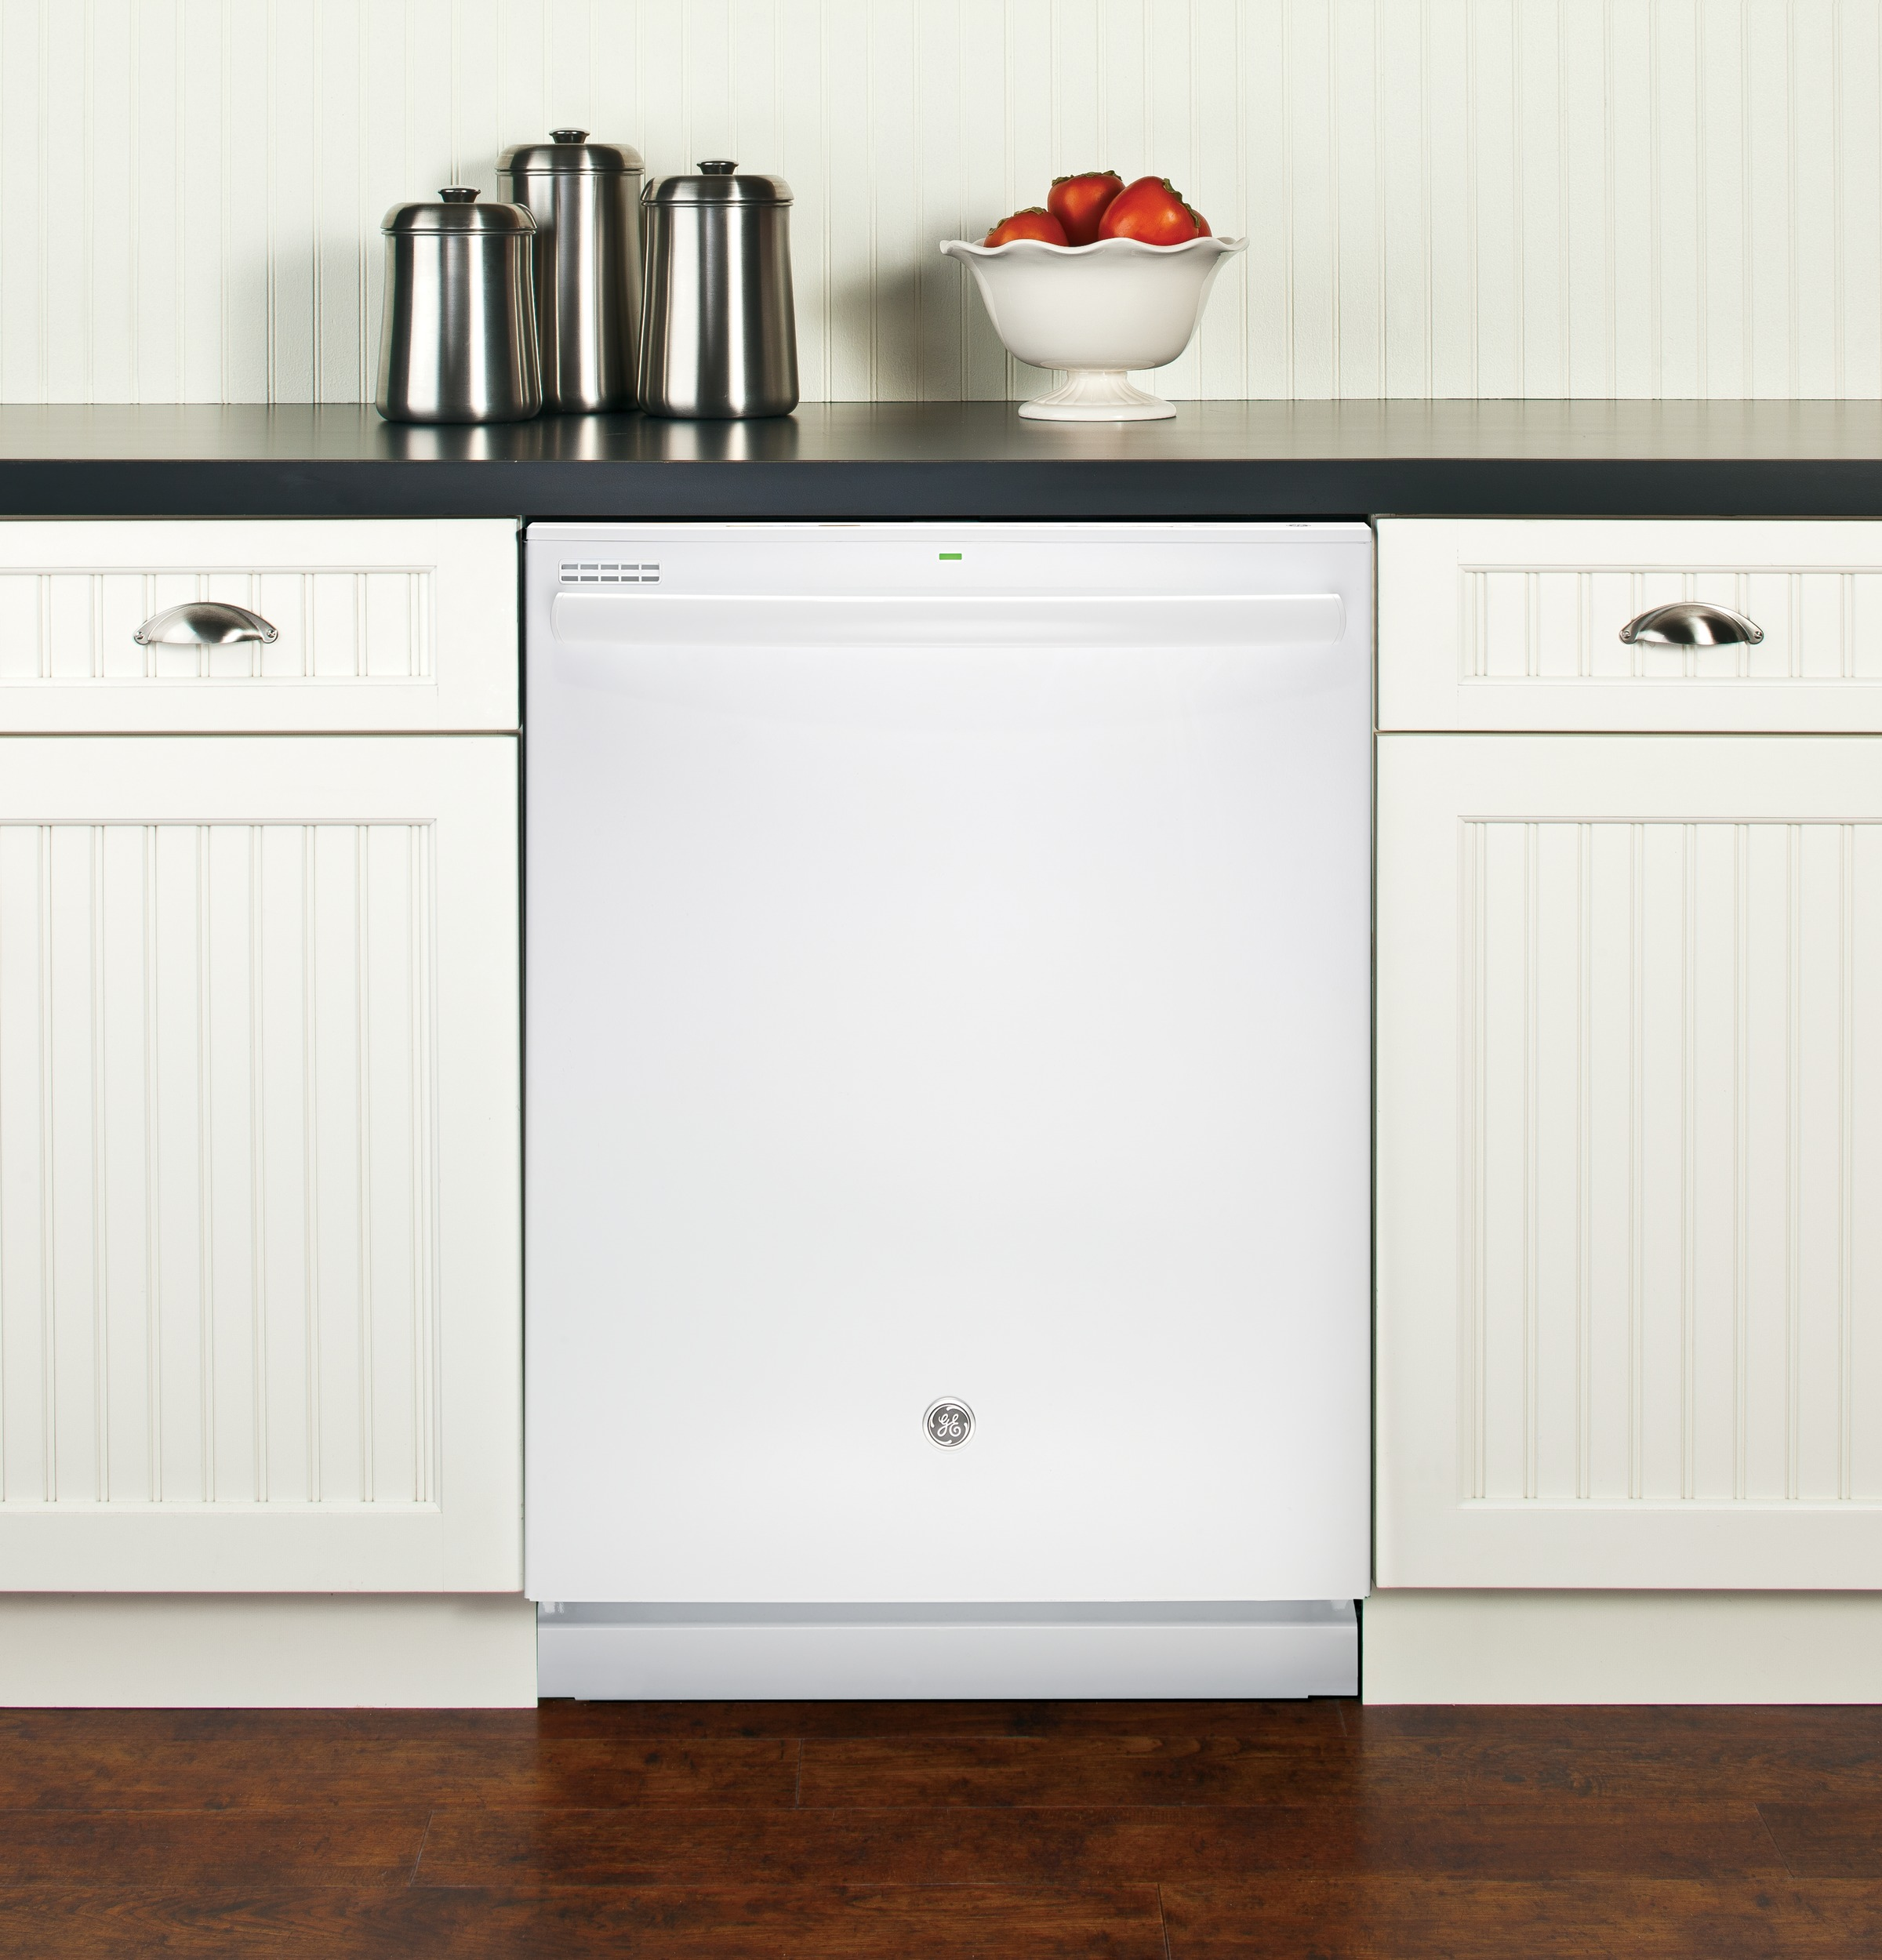 dispatcher dishwasher spacemaker under product specs appliance gea name ge appliances drawer sink requesttype image single the